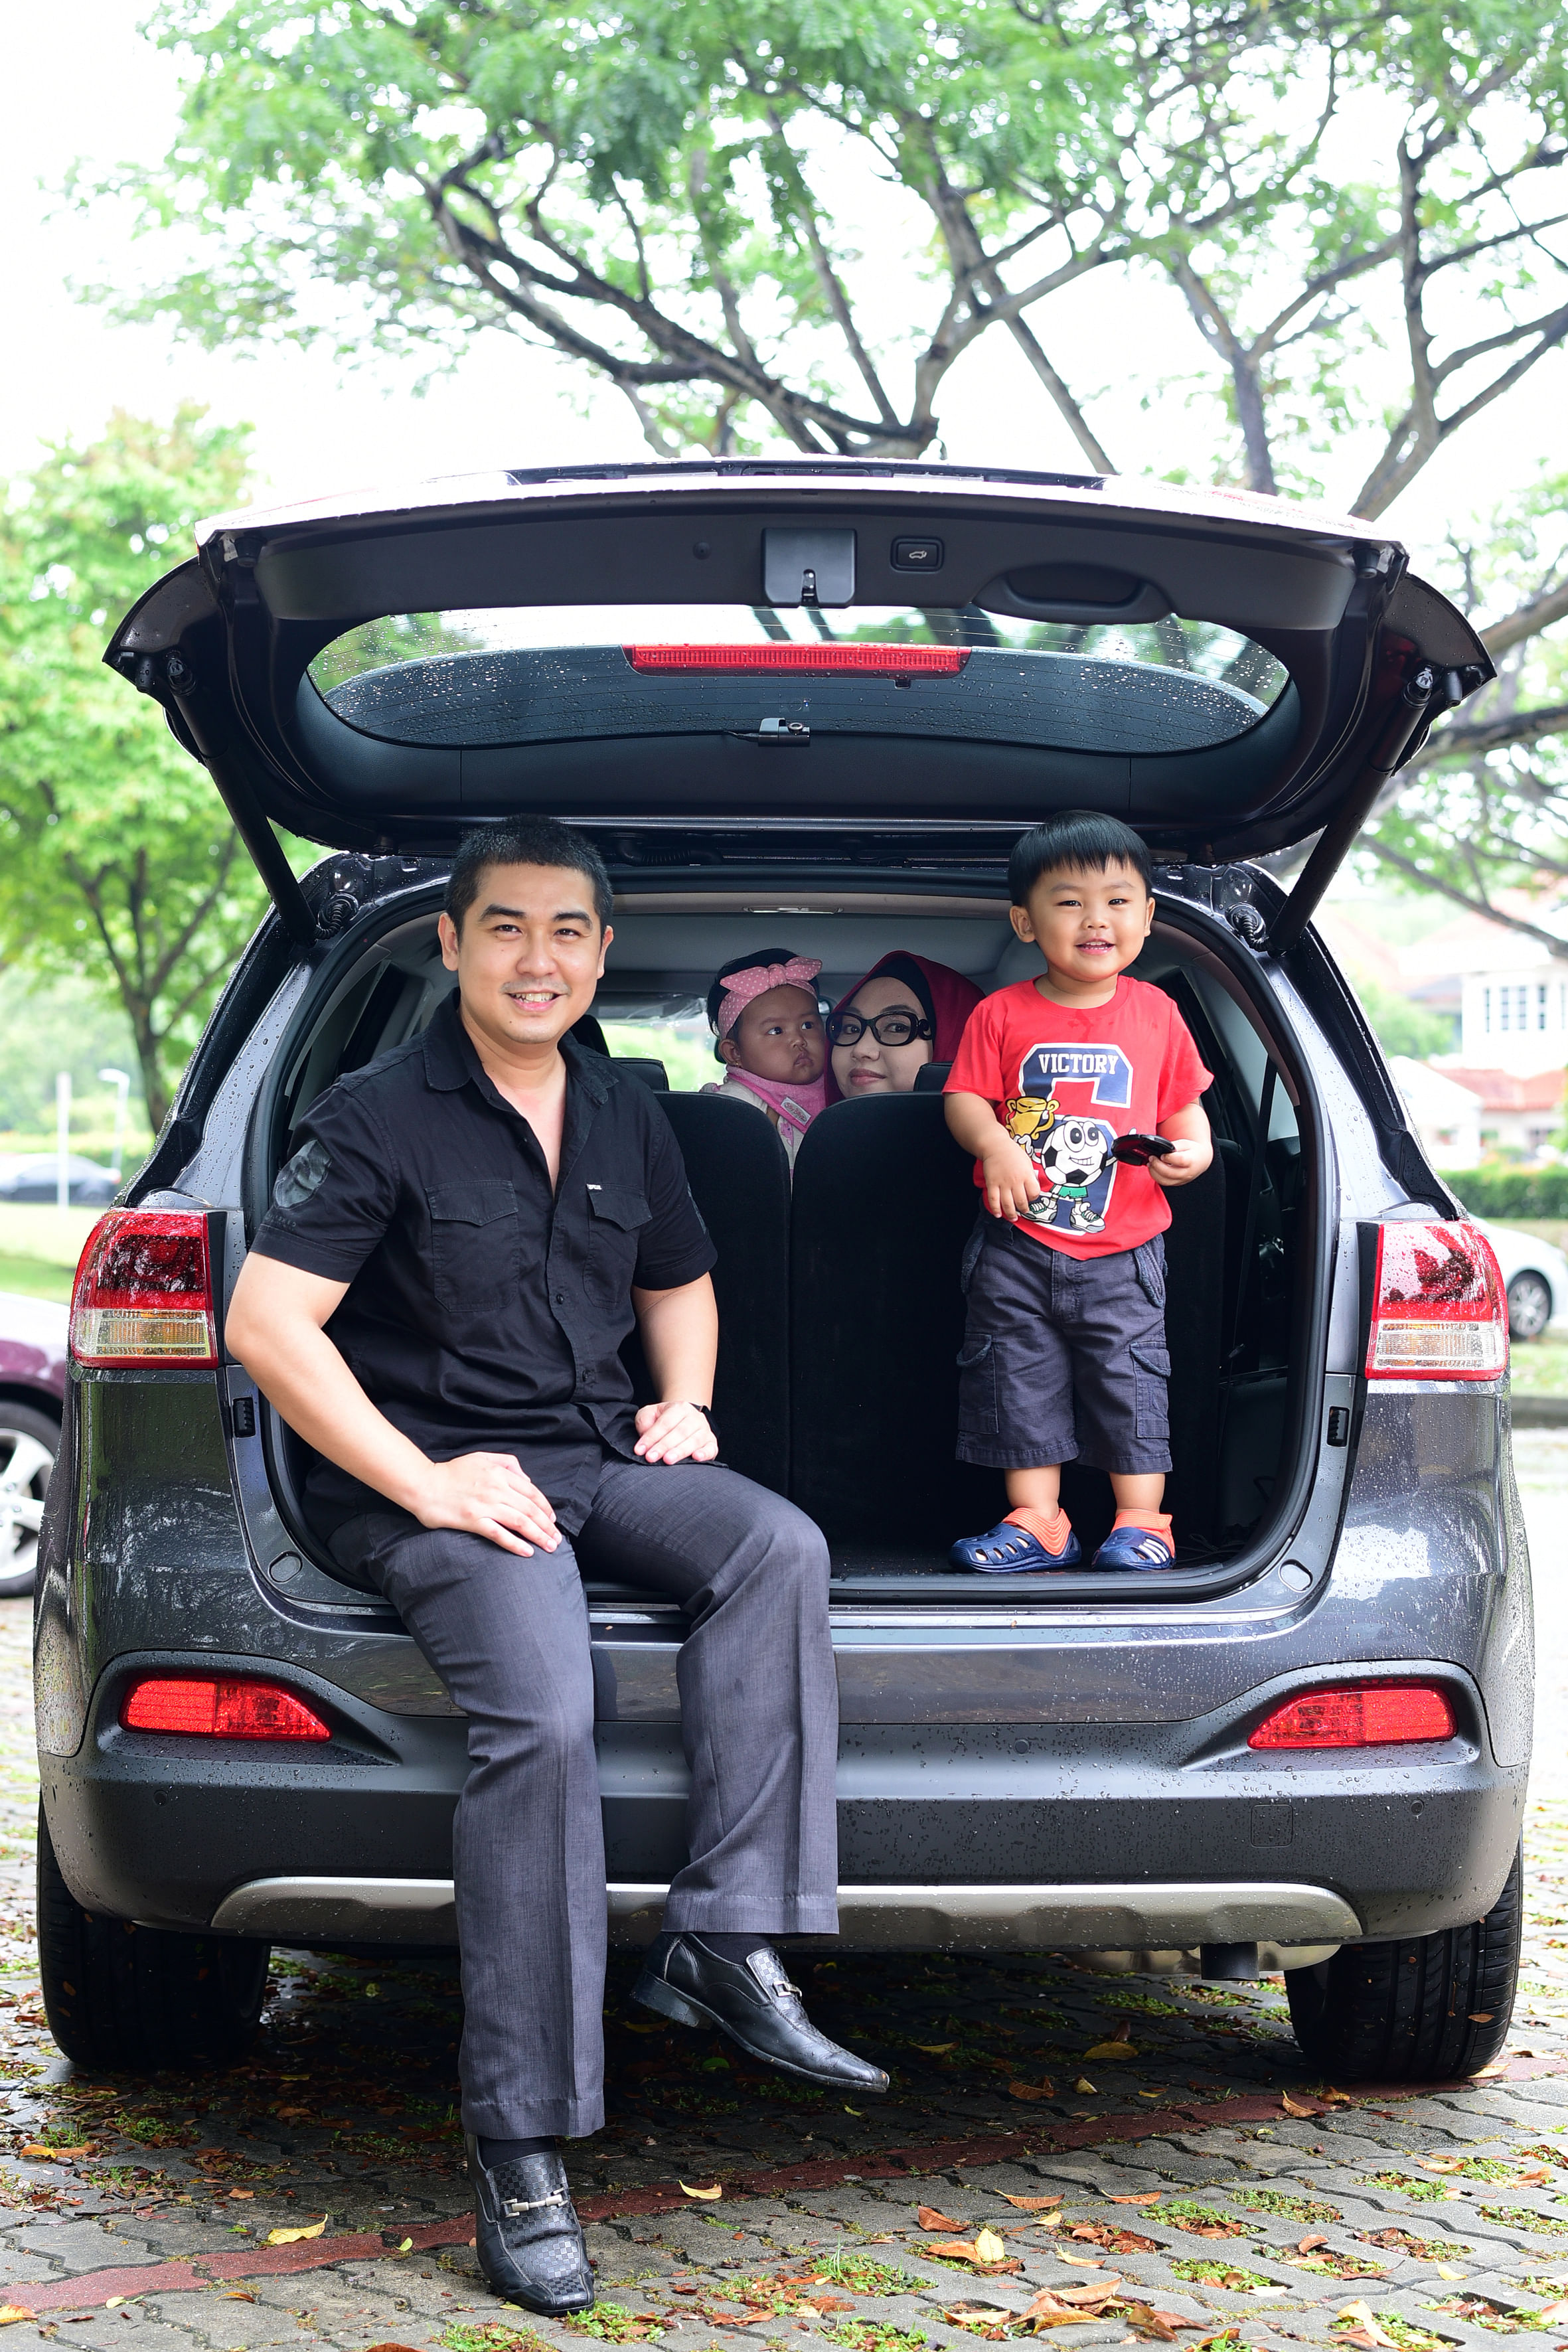 7 Seat Suvs A Hit Among Families Motoring News Top Stories The